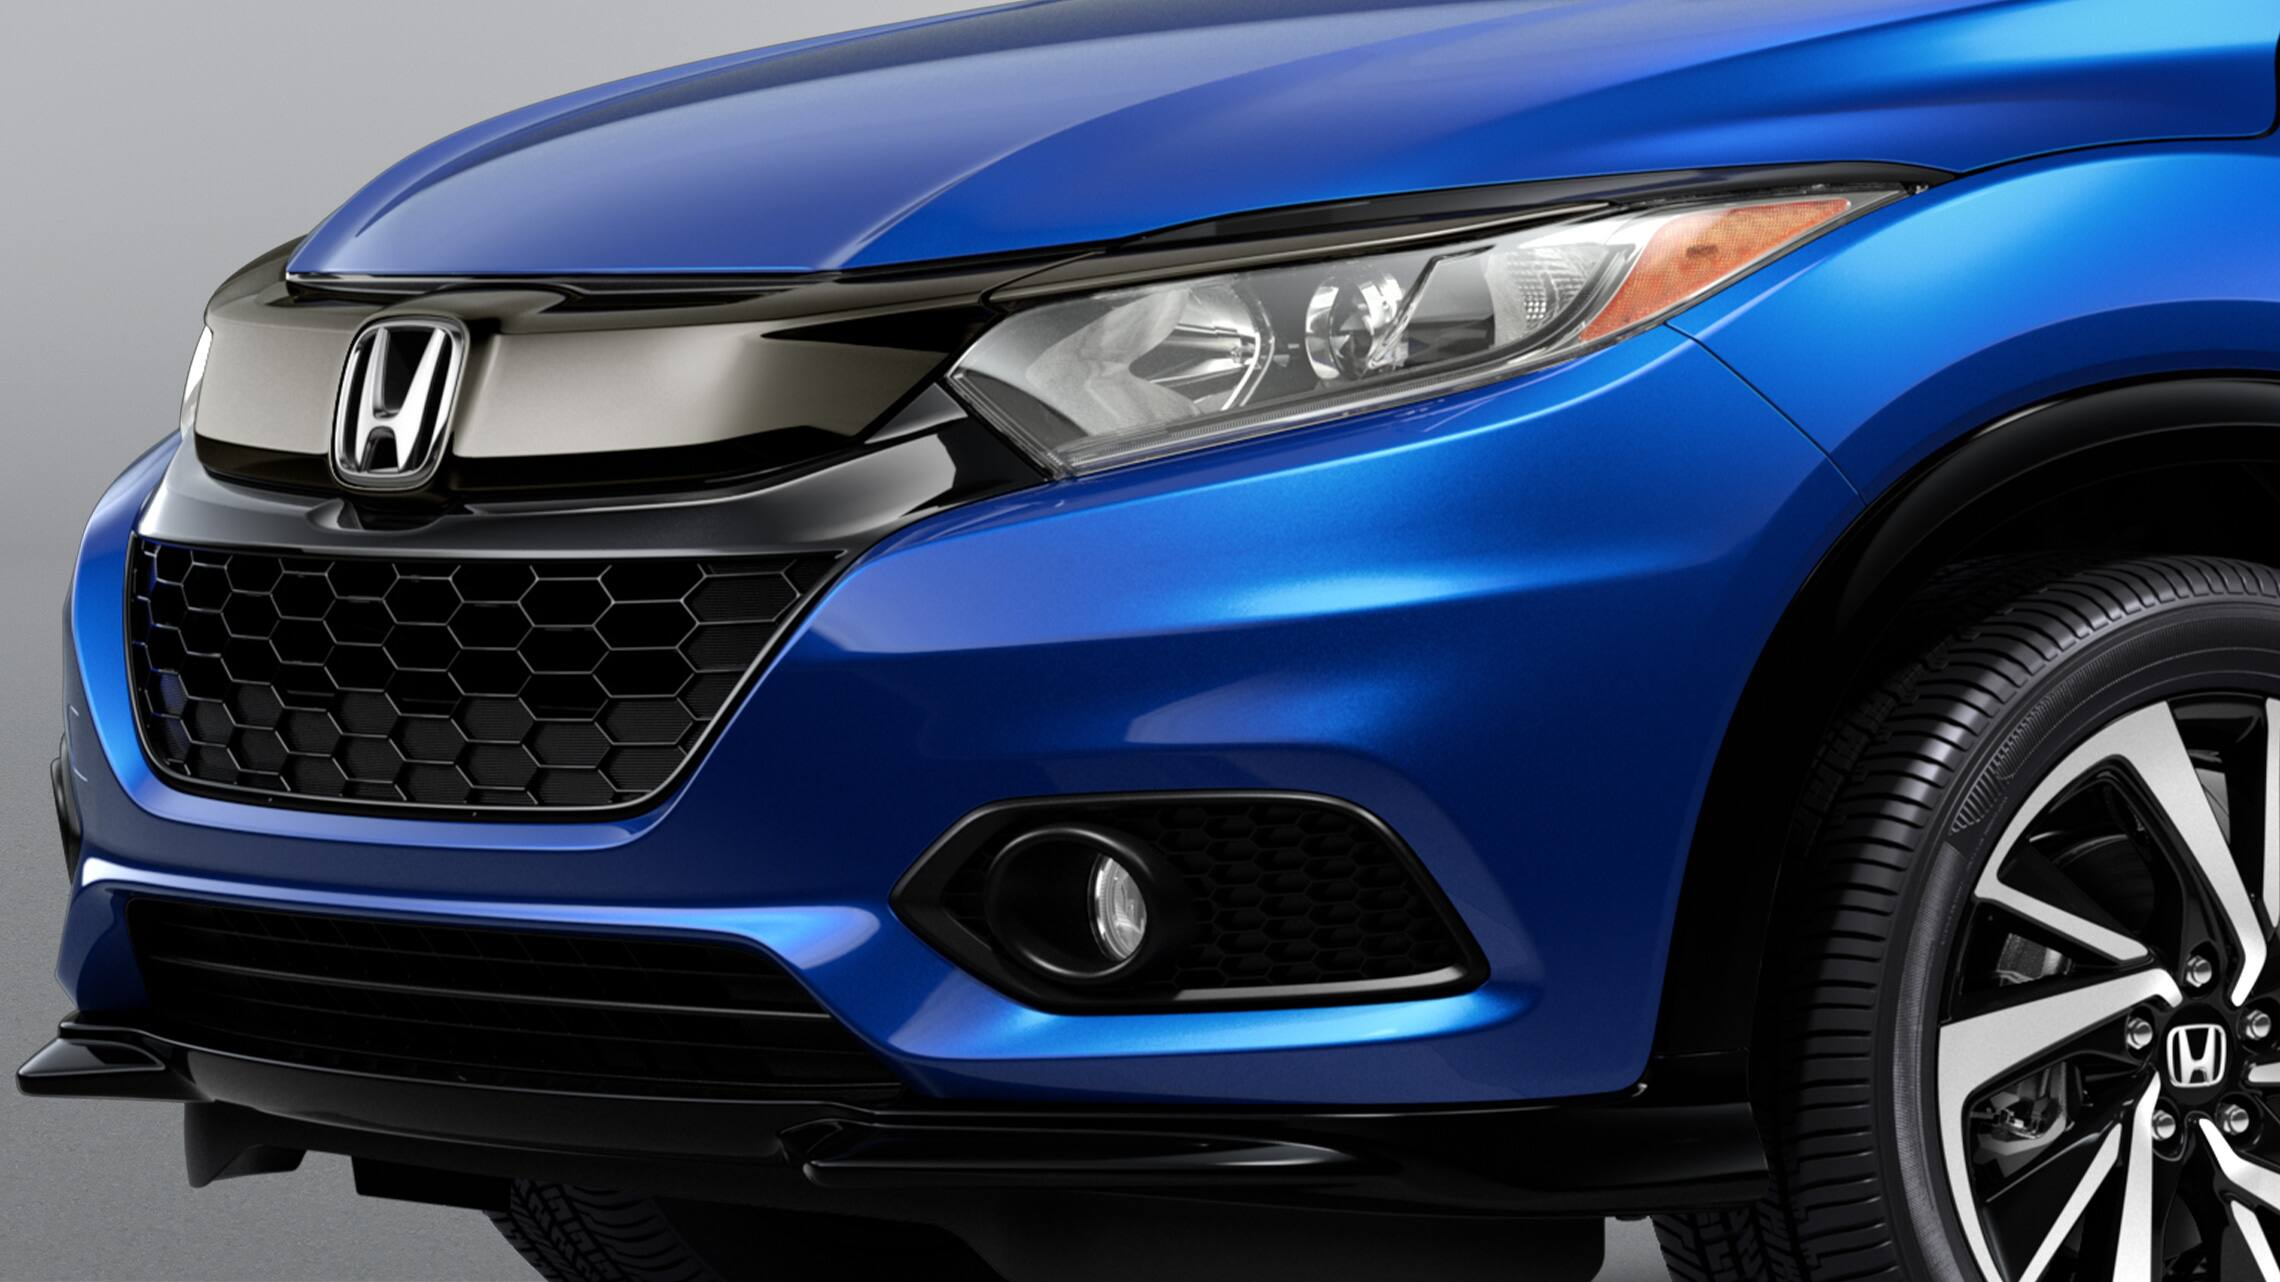 LED Daytime Running Lights detail on the 2020 Honda HR-V Sport in Aegean Blue Metallic.